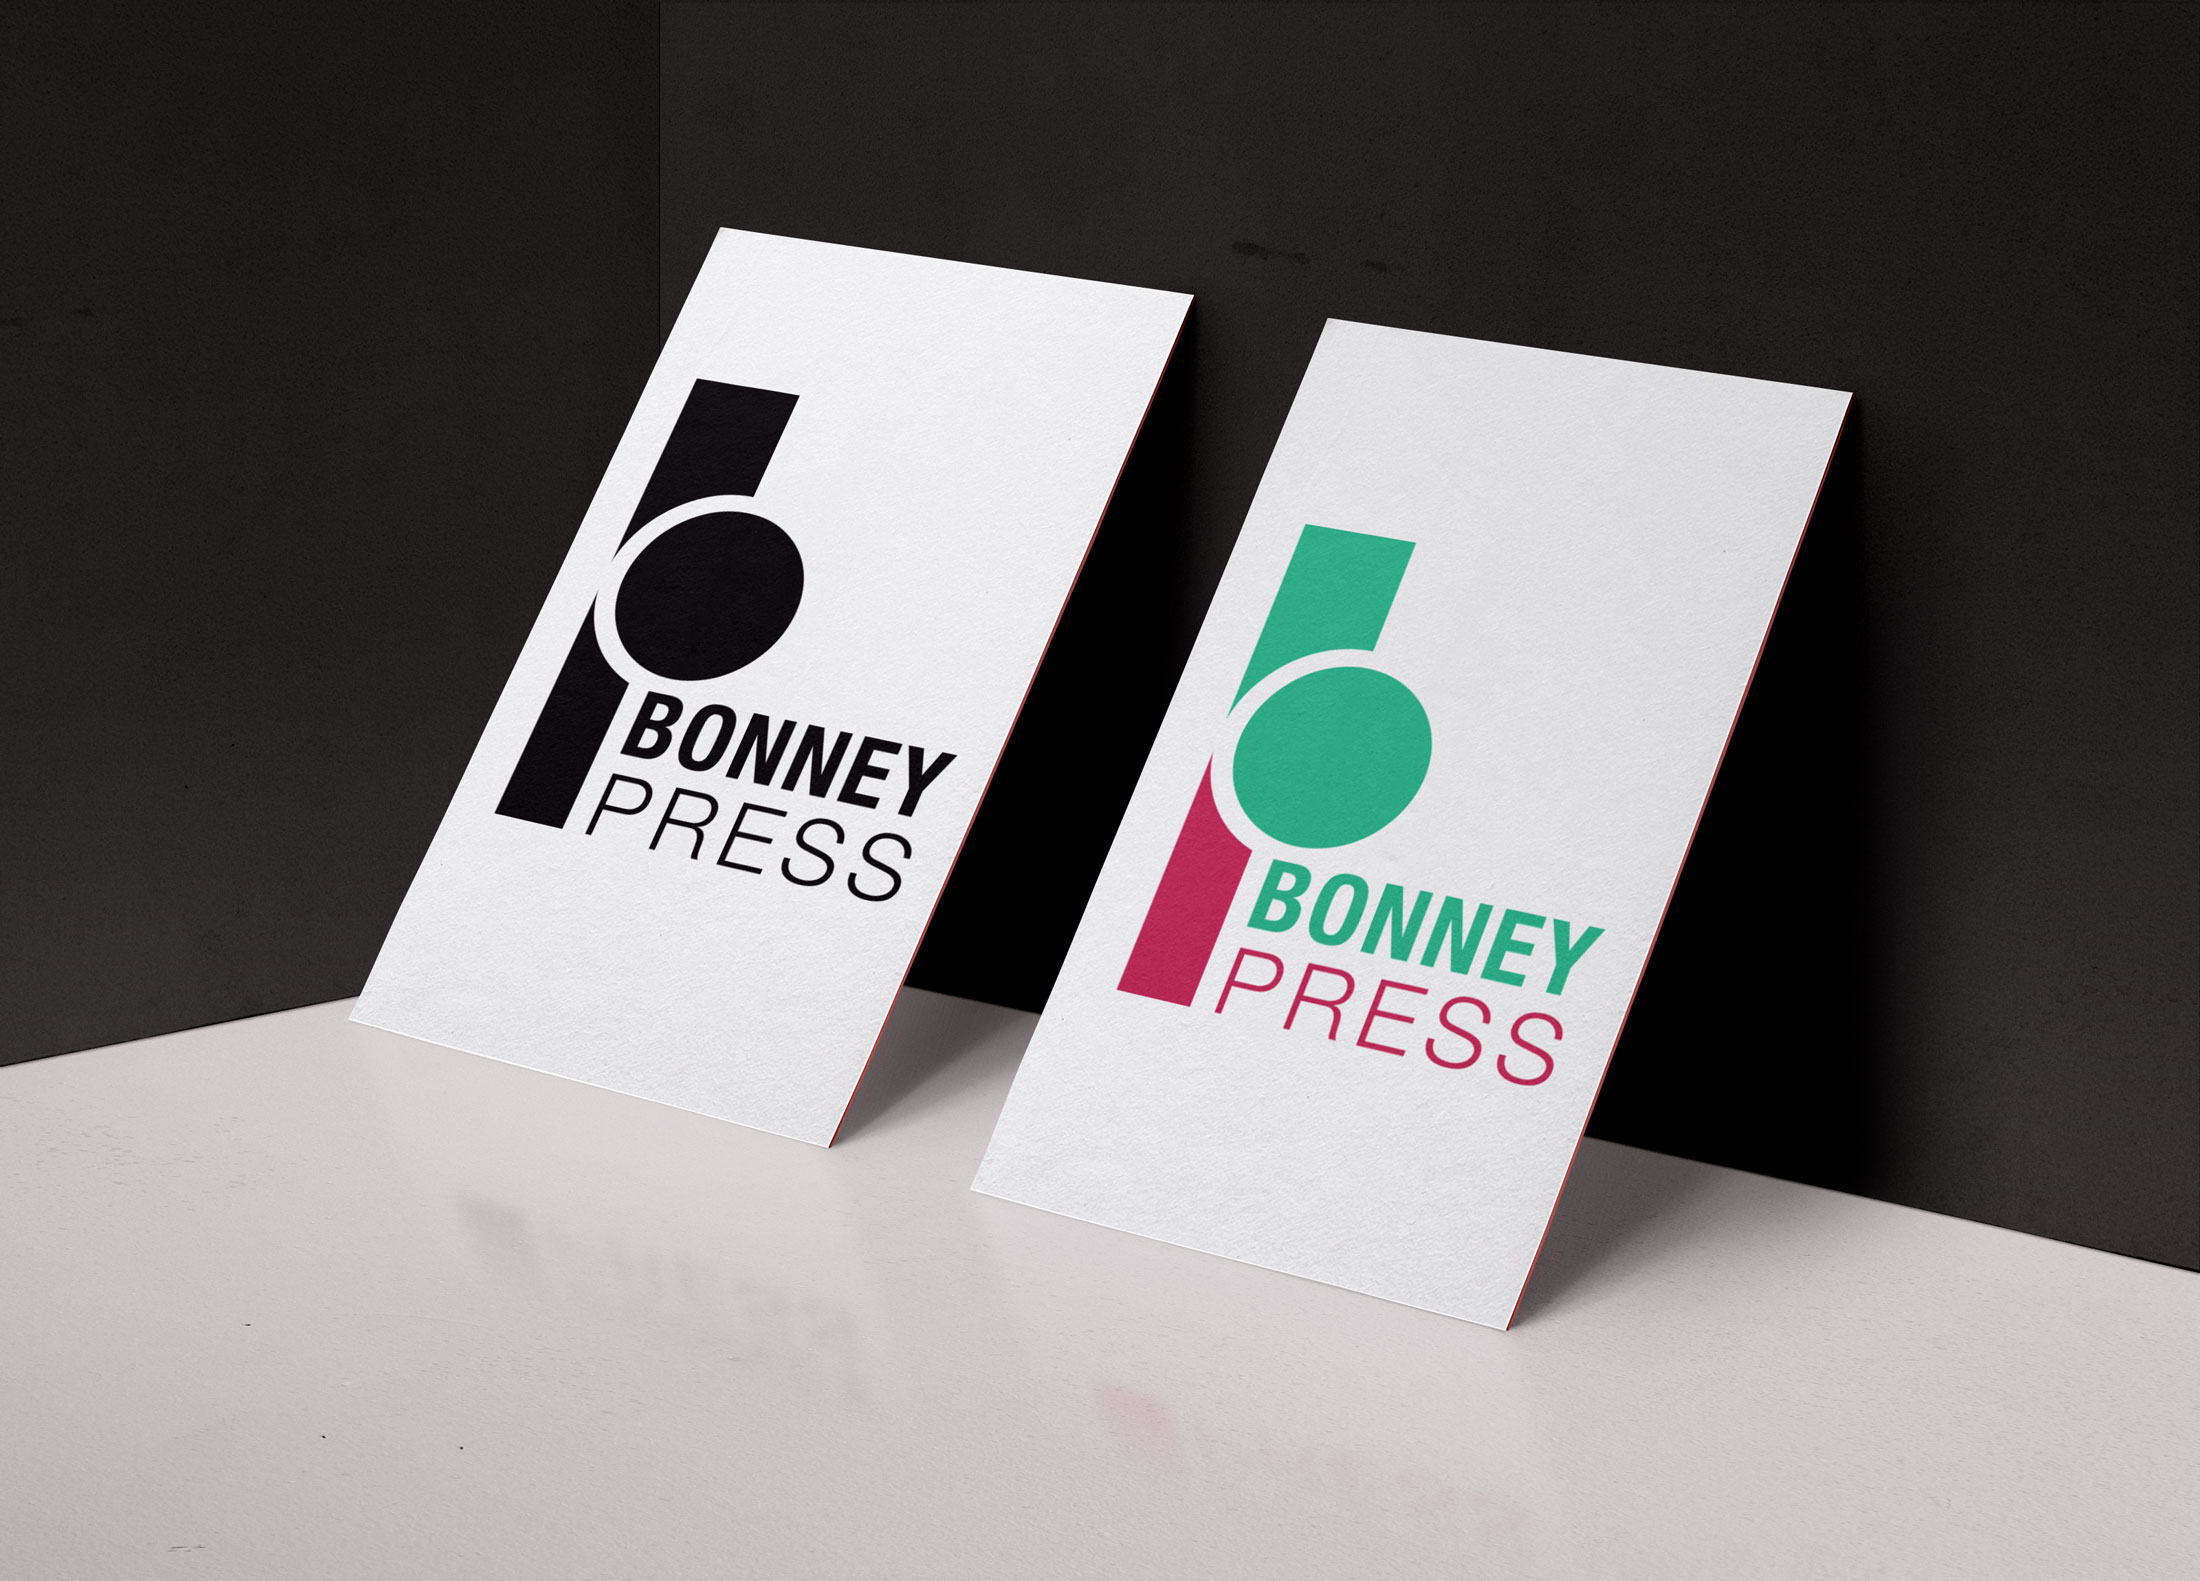 bonnyLogo - Bonney Press